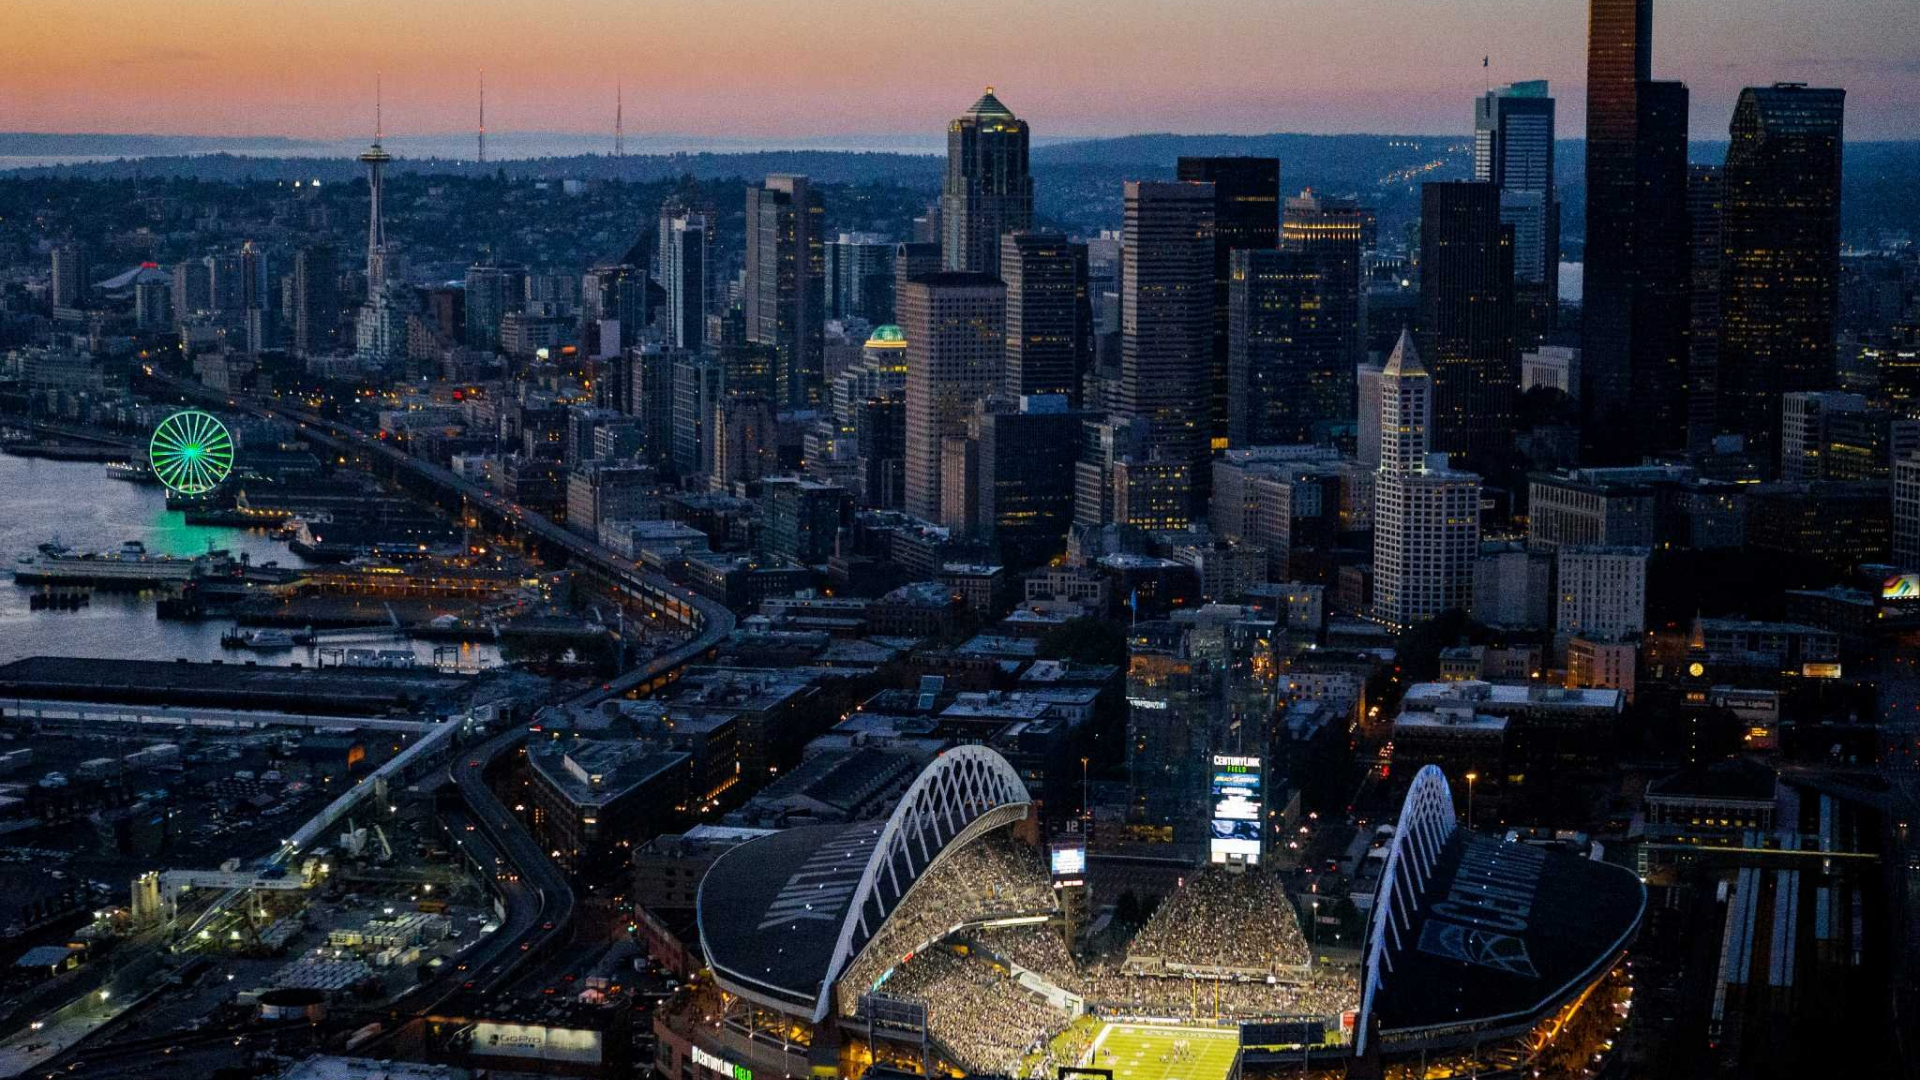 Free Download Seattle Seahawks Nfl Football City Cities Stadium Wallpaper Background 2048x1365 For Your Desktop Mobile Tablet Explore 40 4k Seahawks Wallpaper Ultra Hd 3840x2160 Android Wallpaper 4k Galaxy